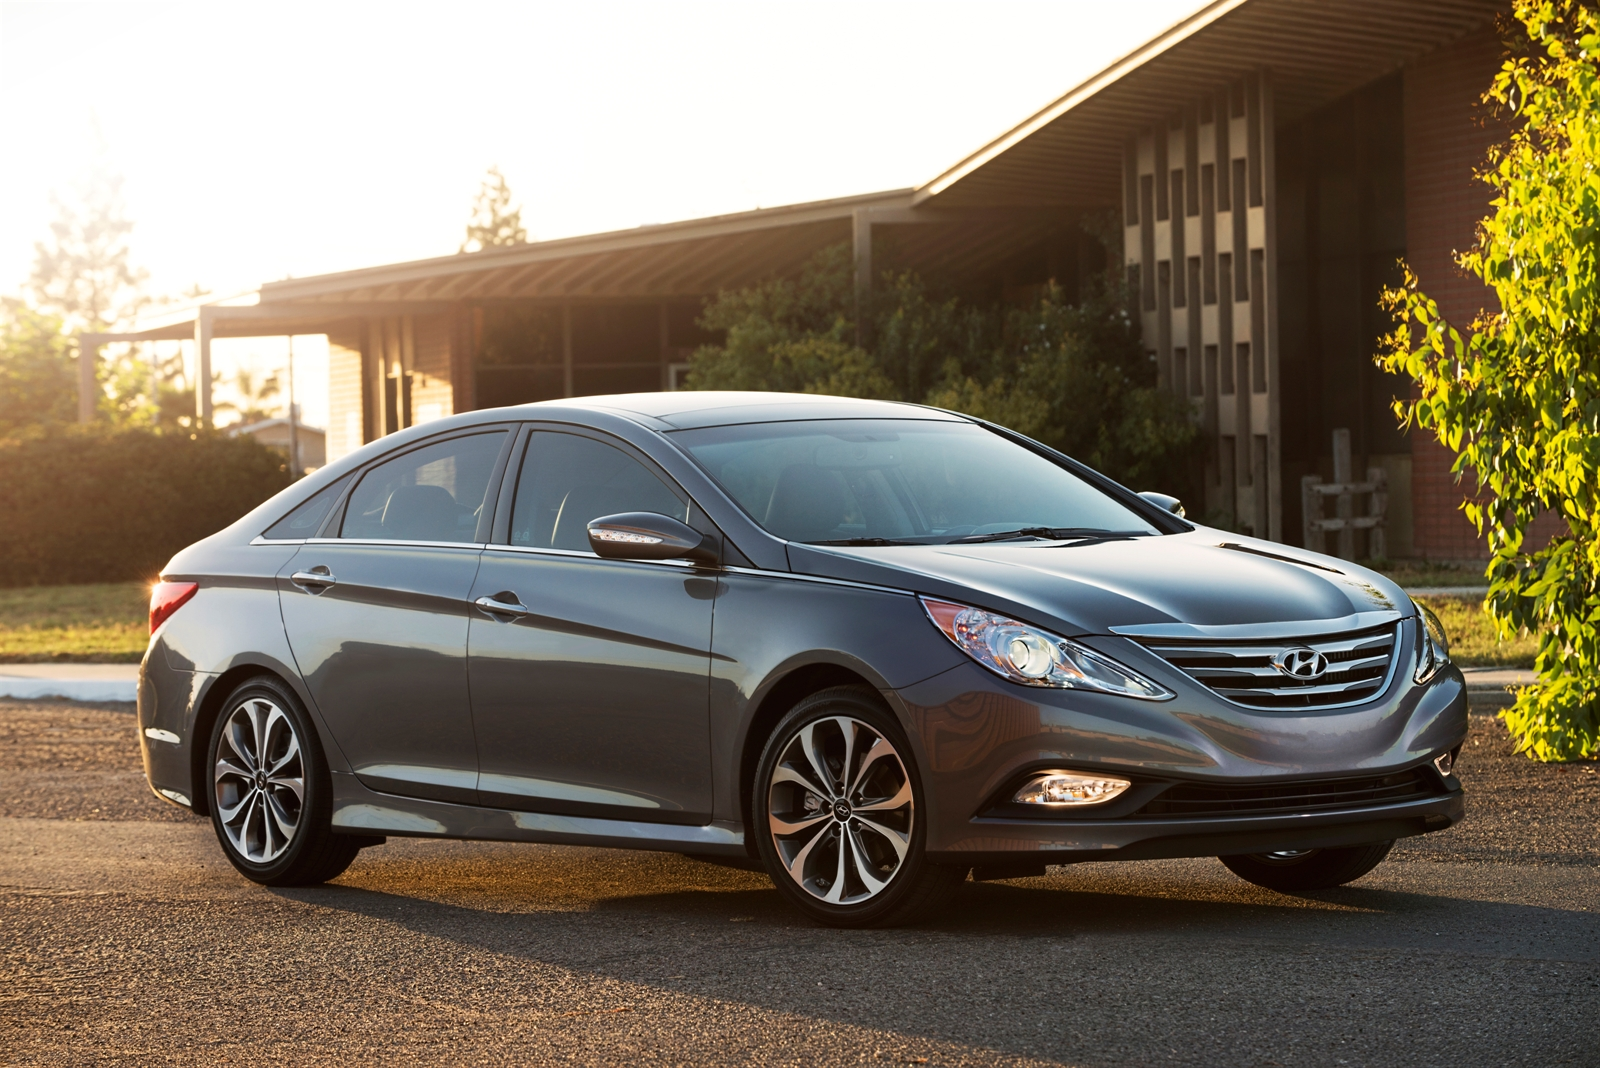 hyundai sonata gas mileage overstated again in korea this. Black Bedroom Furniture Sets. Home Design Ideas